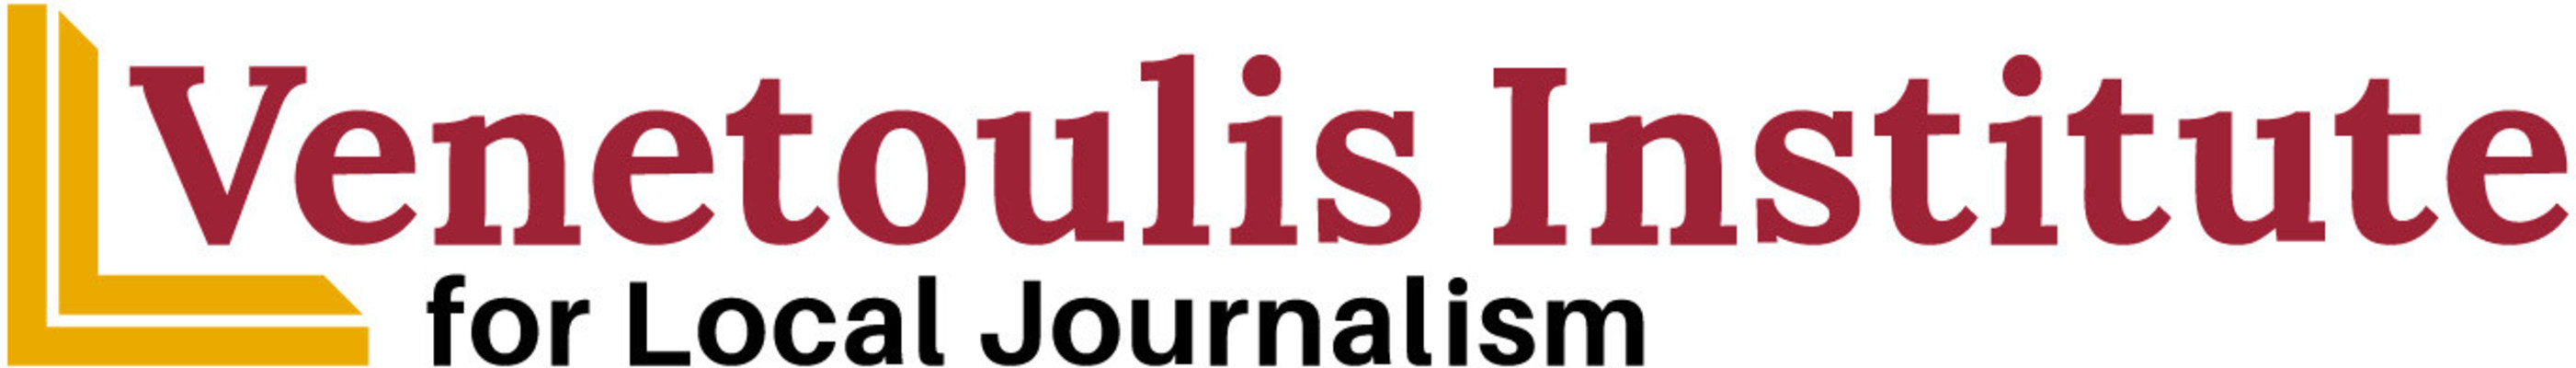 The Venetoulis Institute & The Baltimore Banner Bring Locally Owned Local News to Baltimore